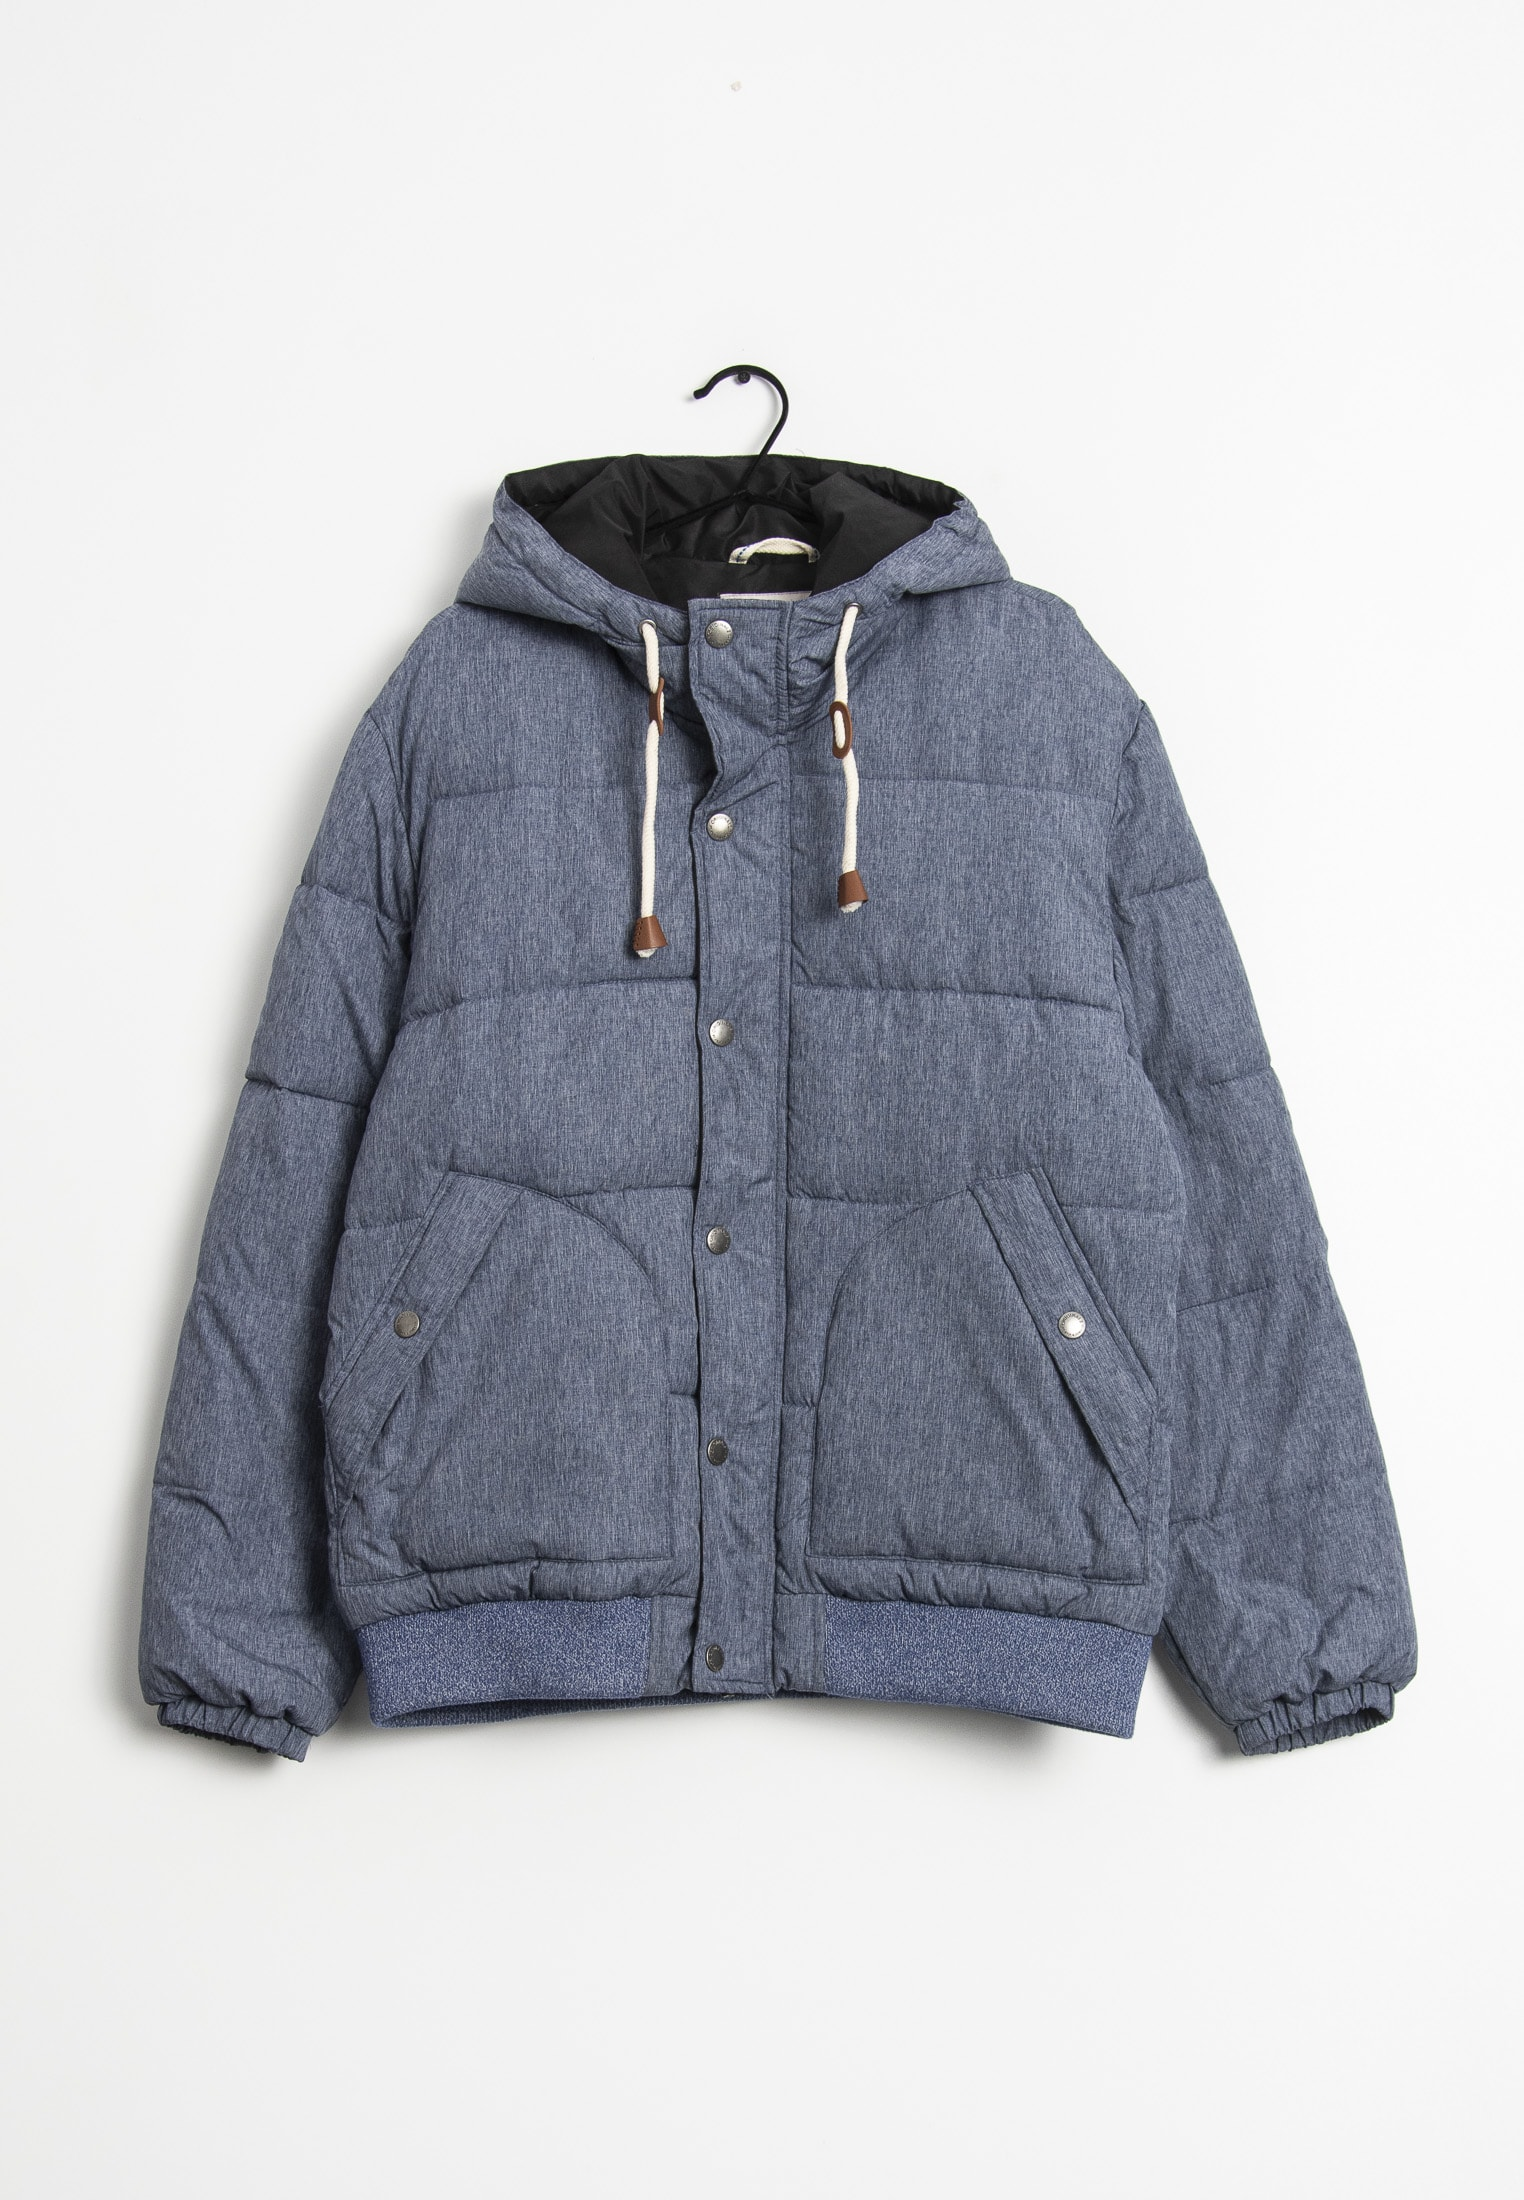 Jack & Jones Winterjacke Blau Gr.XL